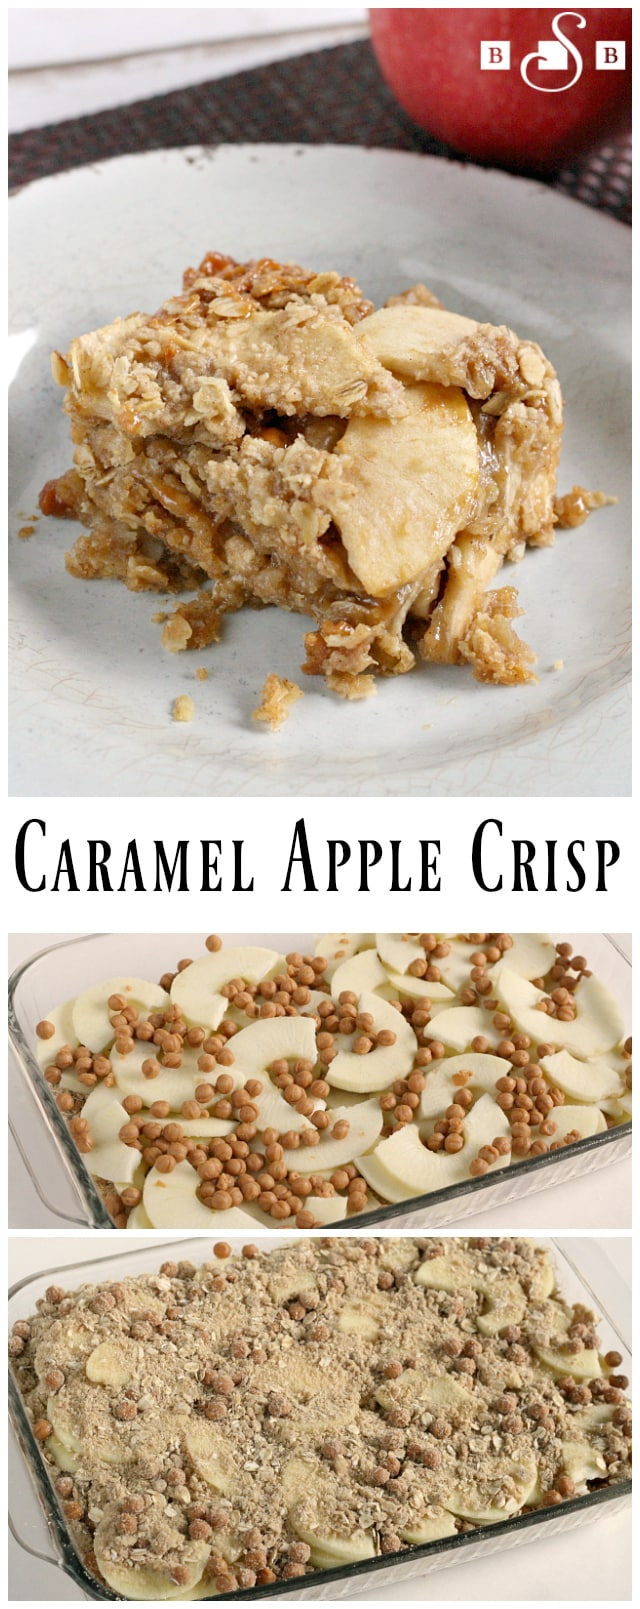 apple crisp cream apple crisp vanilla apple crisp with caramel sauce ...